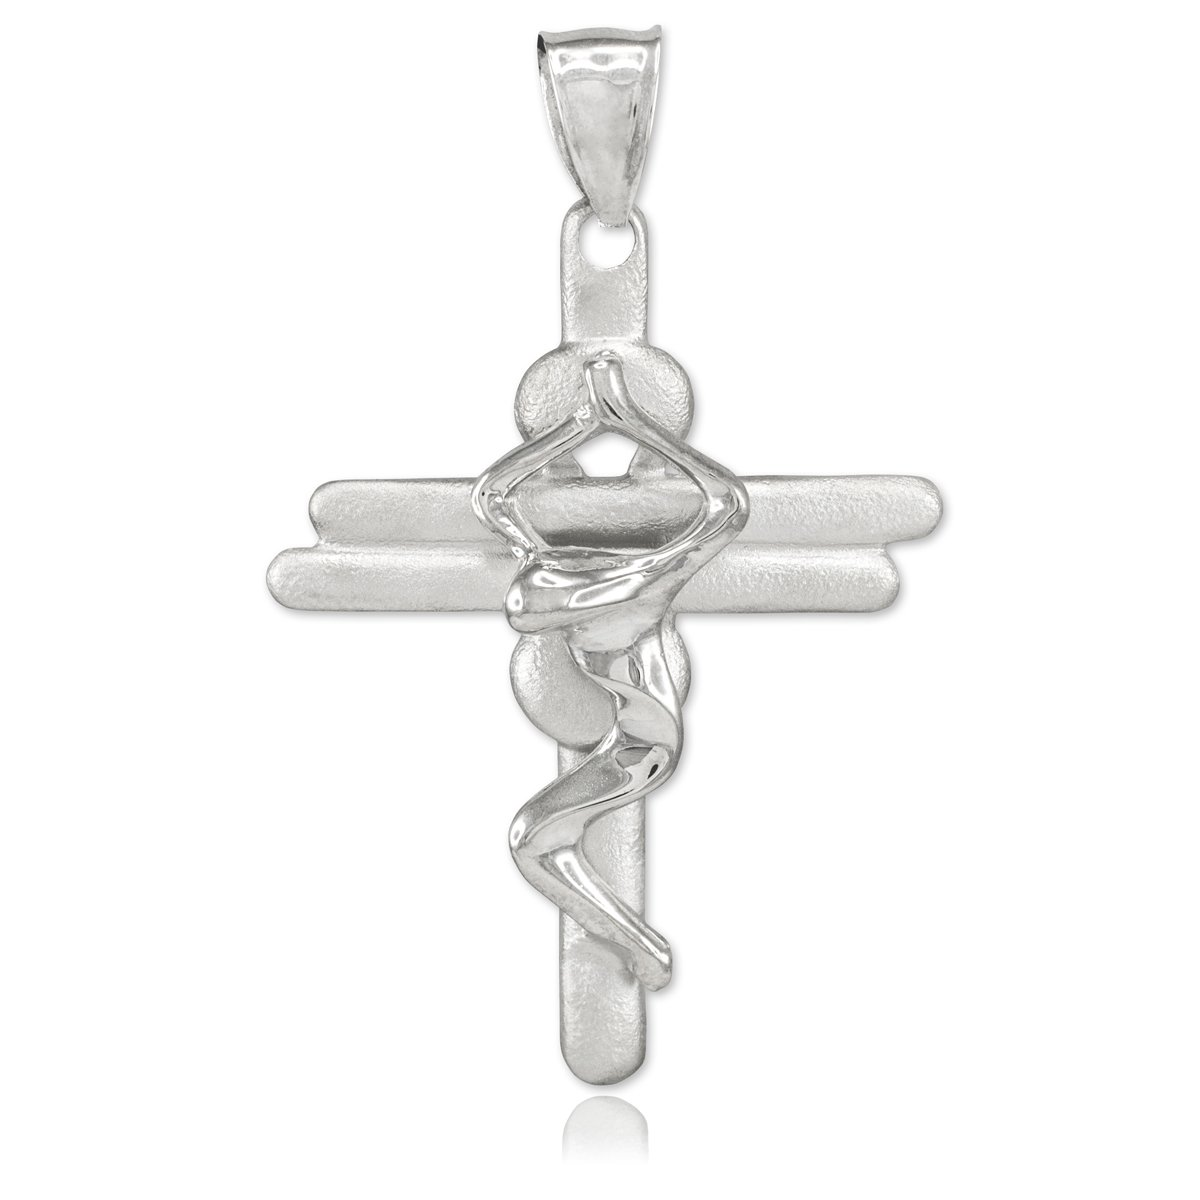 b68b2cc4234d Little Treasures - Sterling Silver Contemporary Crucifix Cross Pendant  Necklace (Come with an 18   chain)  Amazon.co.uk  Jewellery